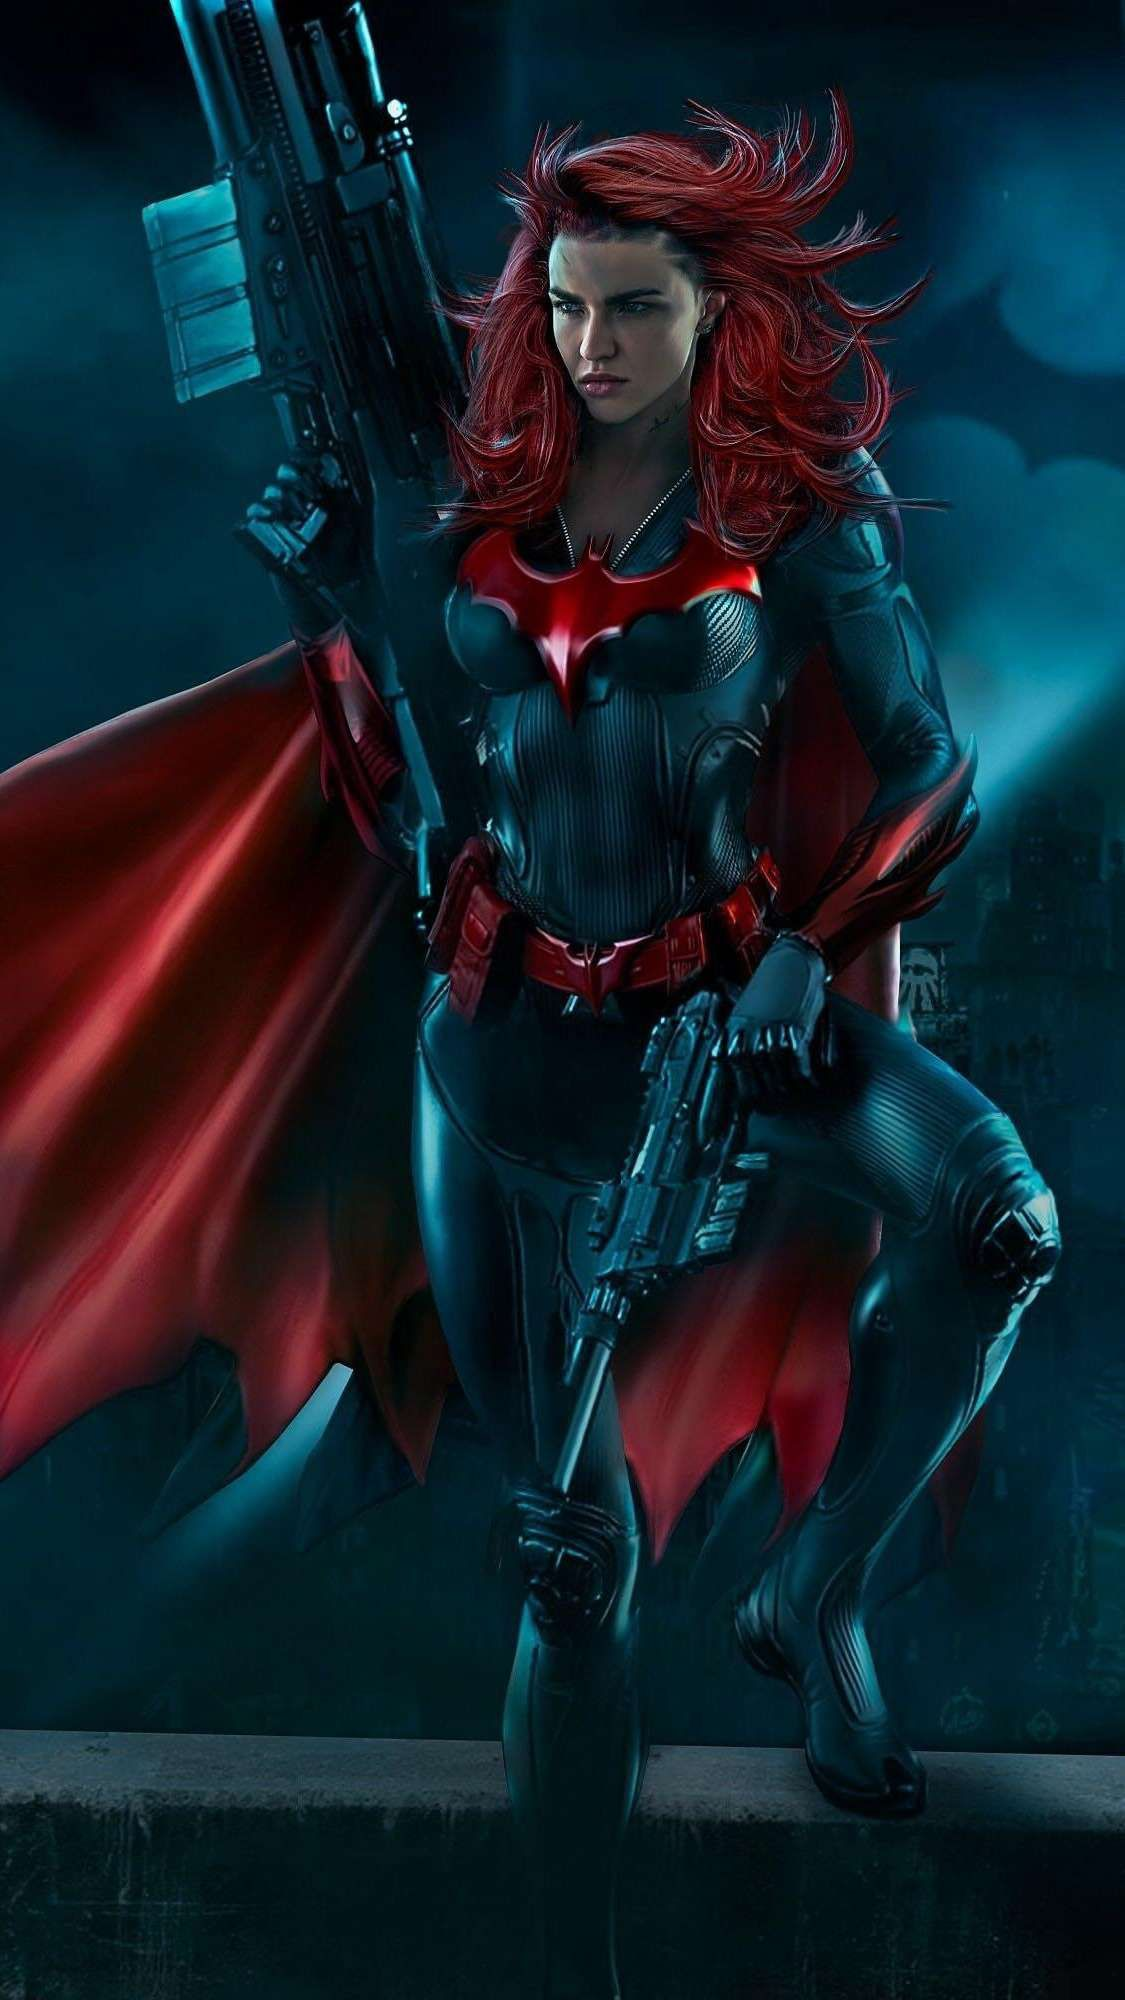 The Batwoman Iphone Wallpaper Batwoman Superhero Comics Girls